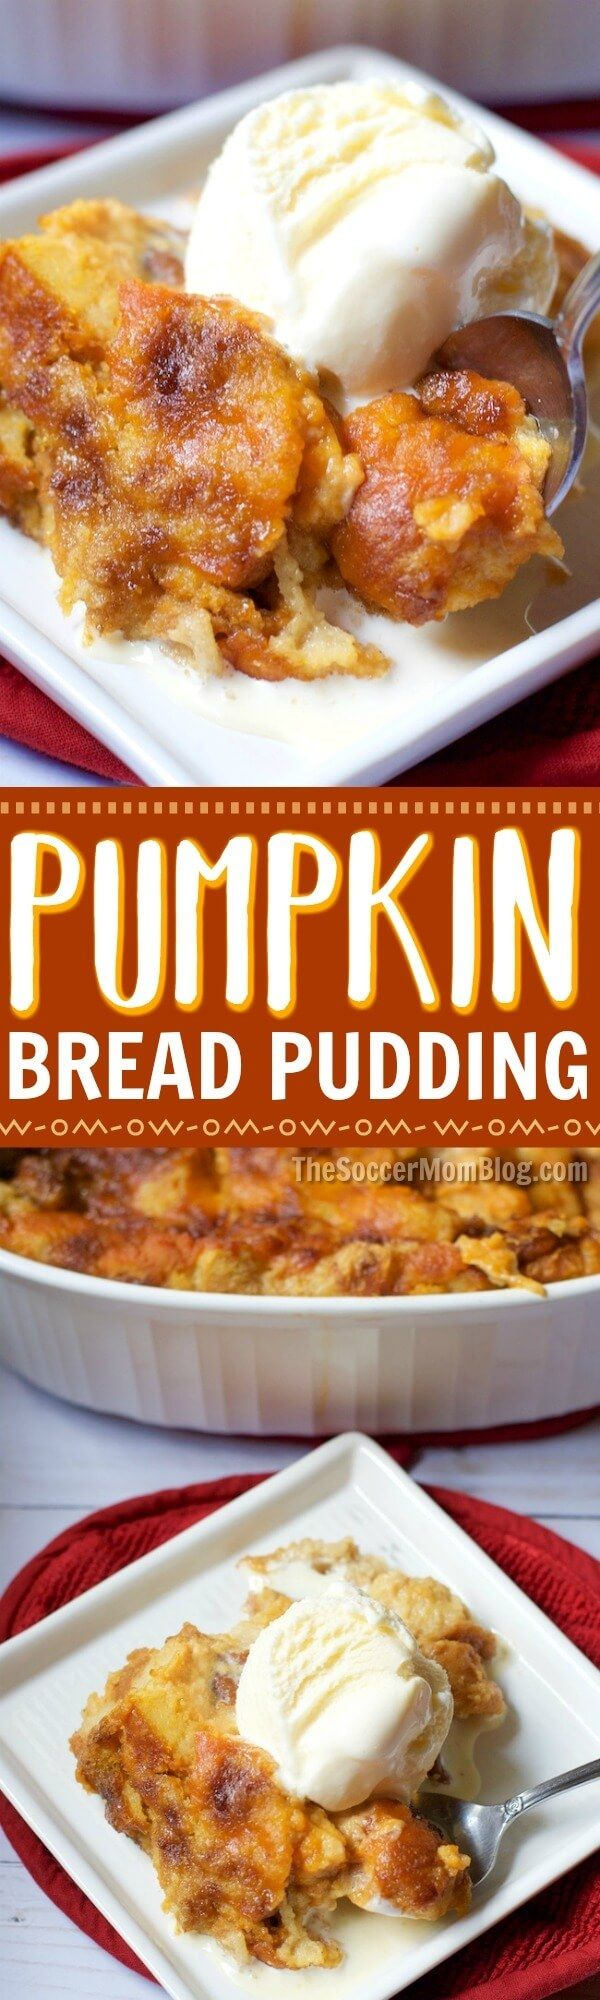 Warning:This melt-in-your-mouth pumpkin pie bread pudding recipe may just become your new favorite Thanksgiving dessert! via @https://www.pinterest.com/soccermomblog